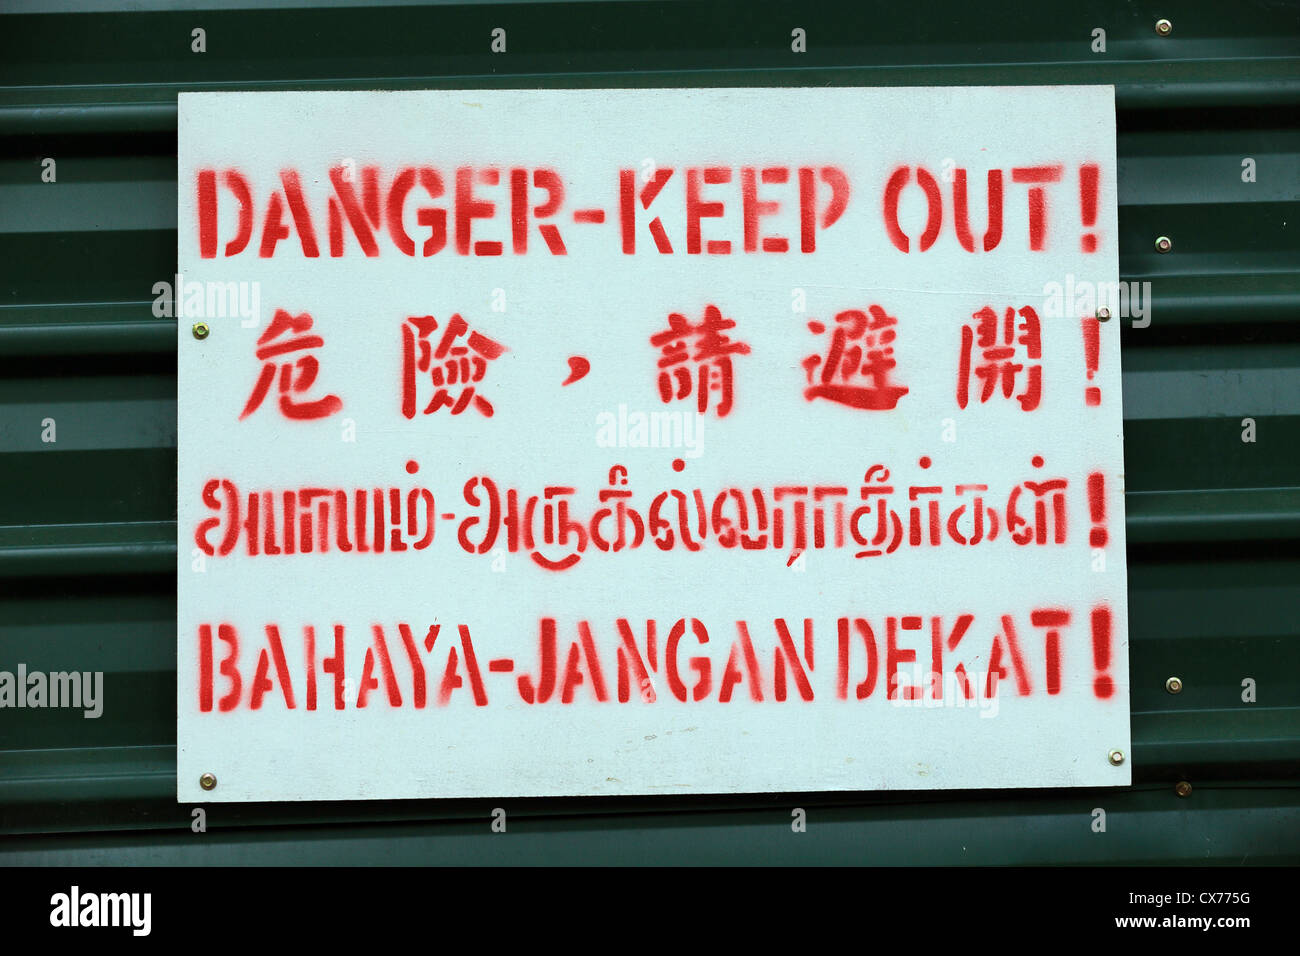 Danger keep out sign in four languages including English and Malay. - Stock Image